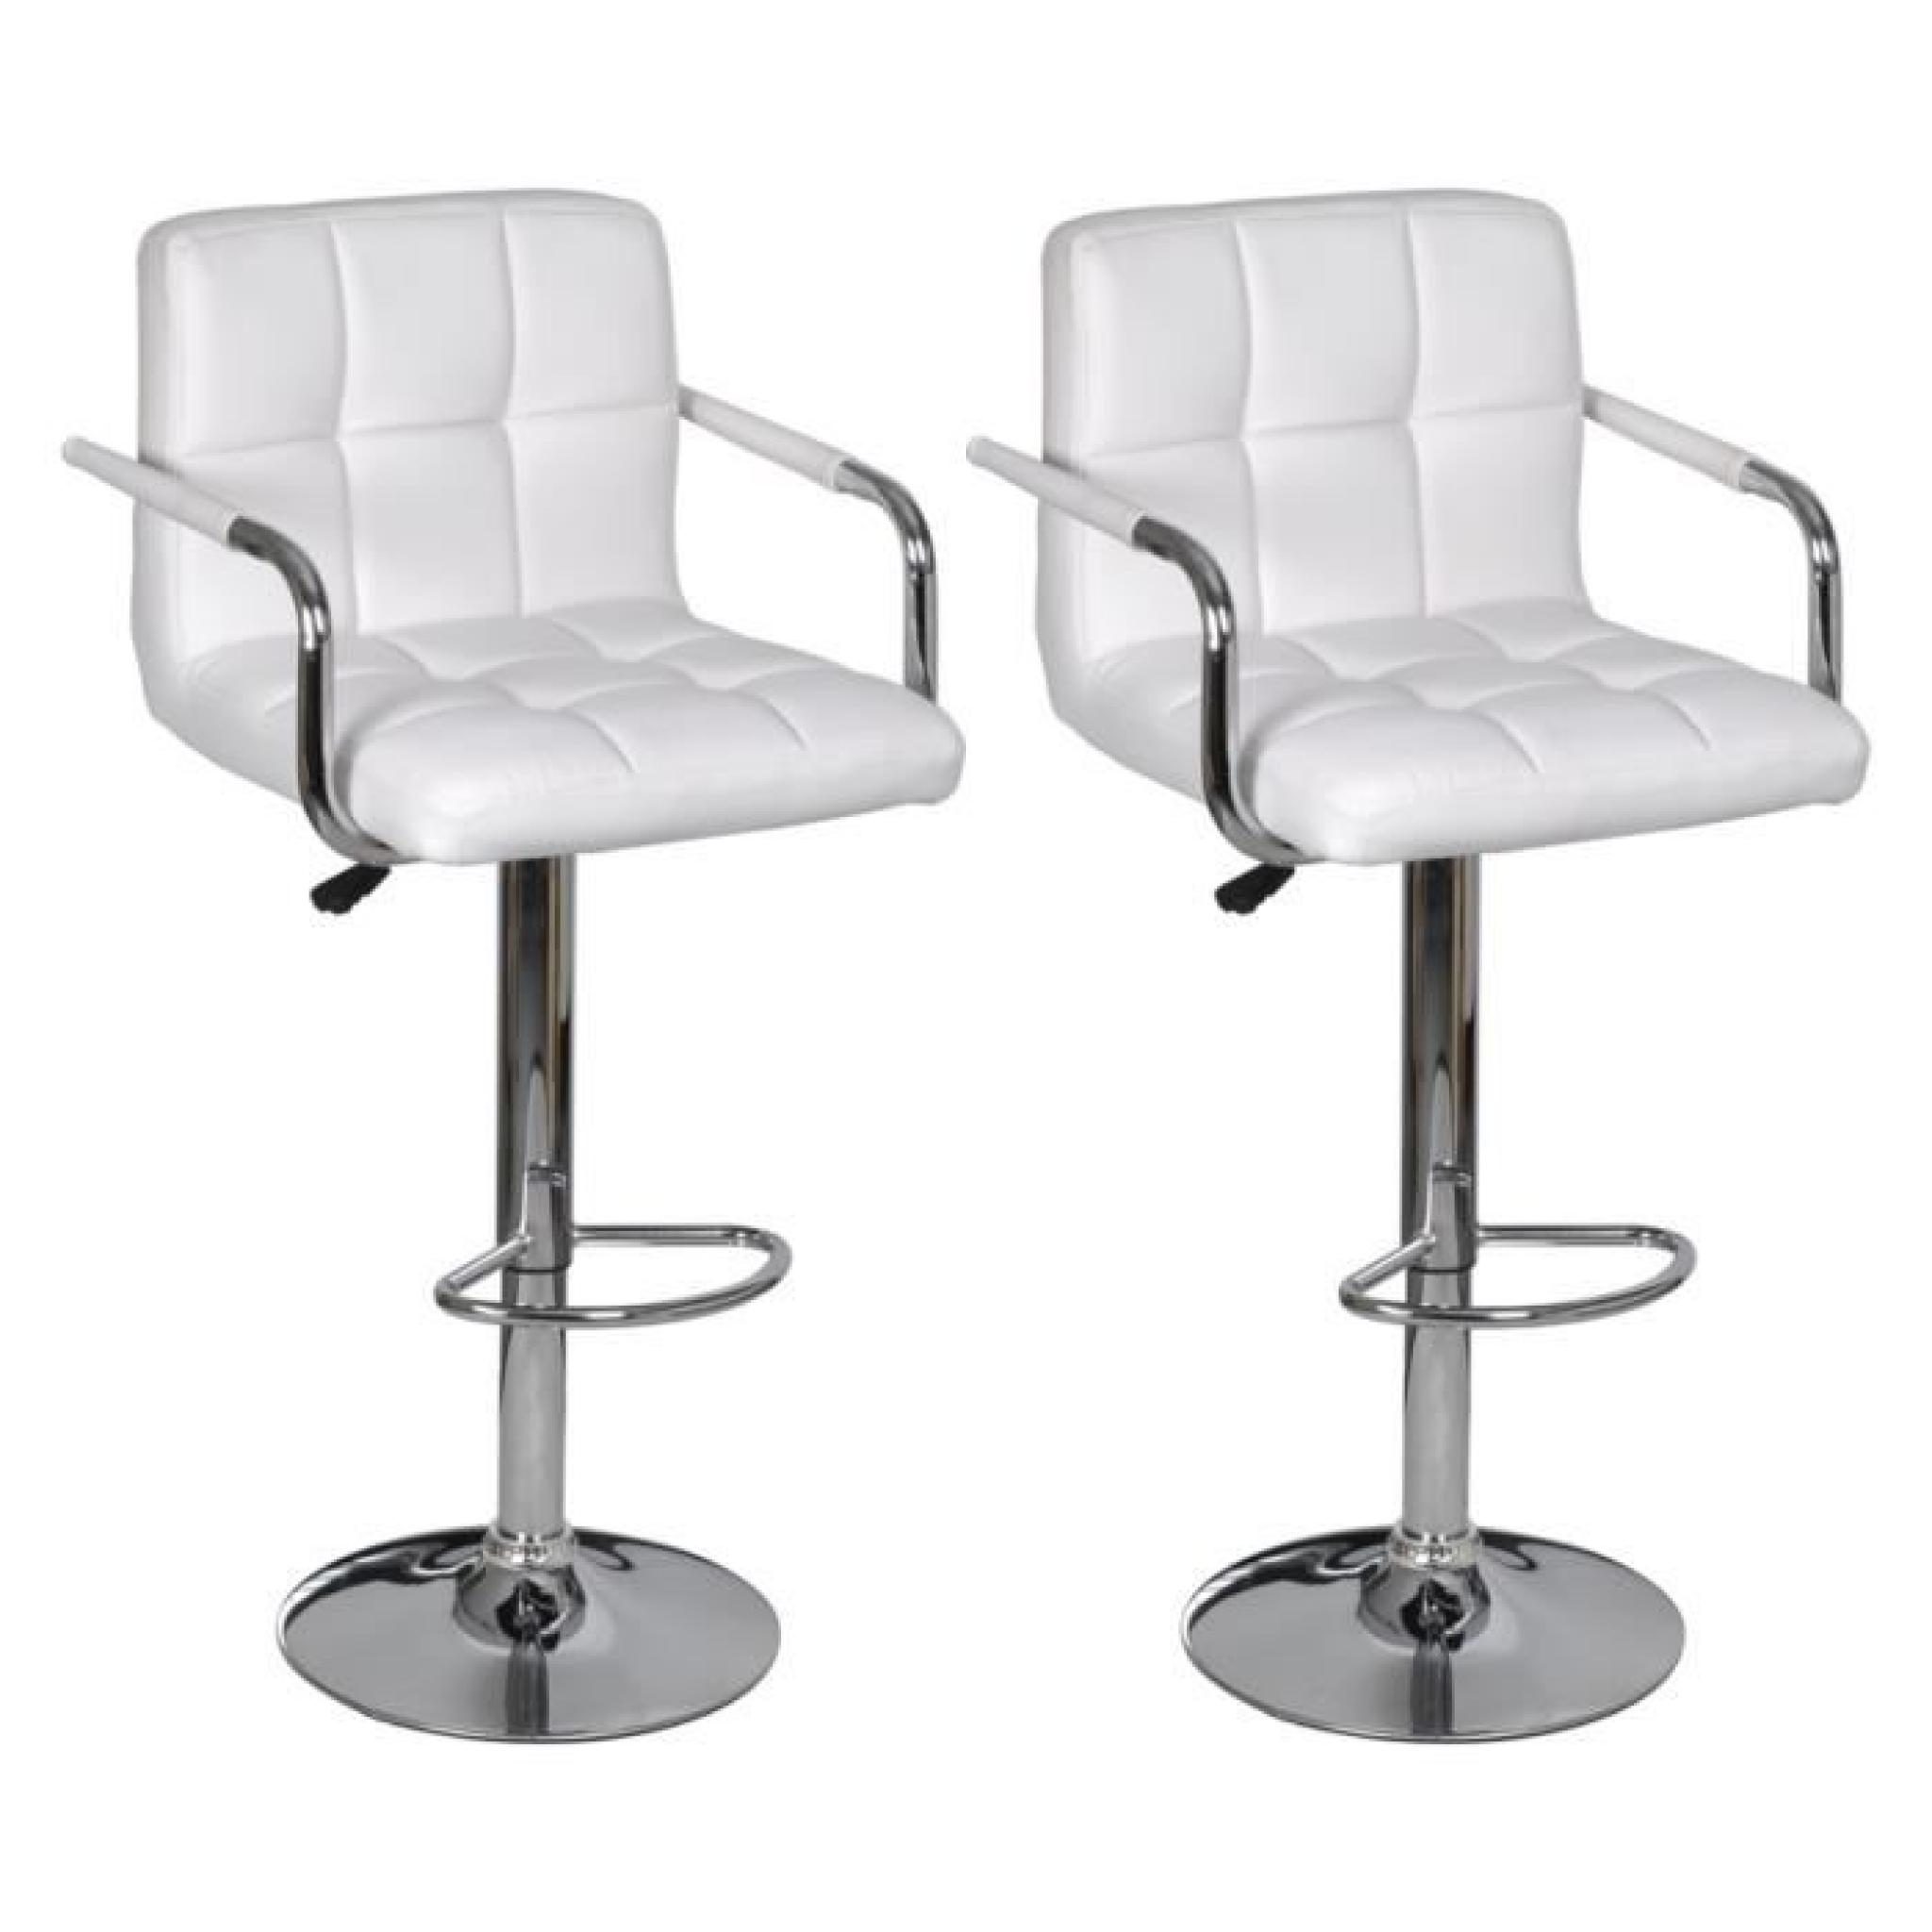 lot de 2 tabourets de bar blancs avec accoudoirs achat vente tabouret de bar pas cher. Black Bedroom Furniture Sets. Home Design Ideas